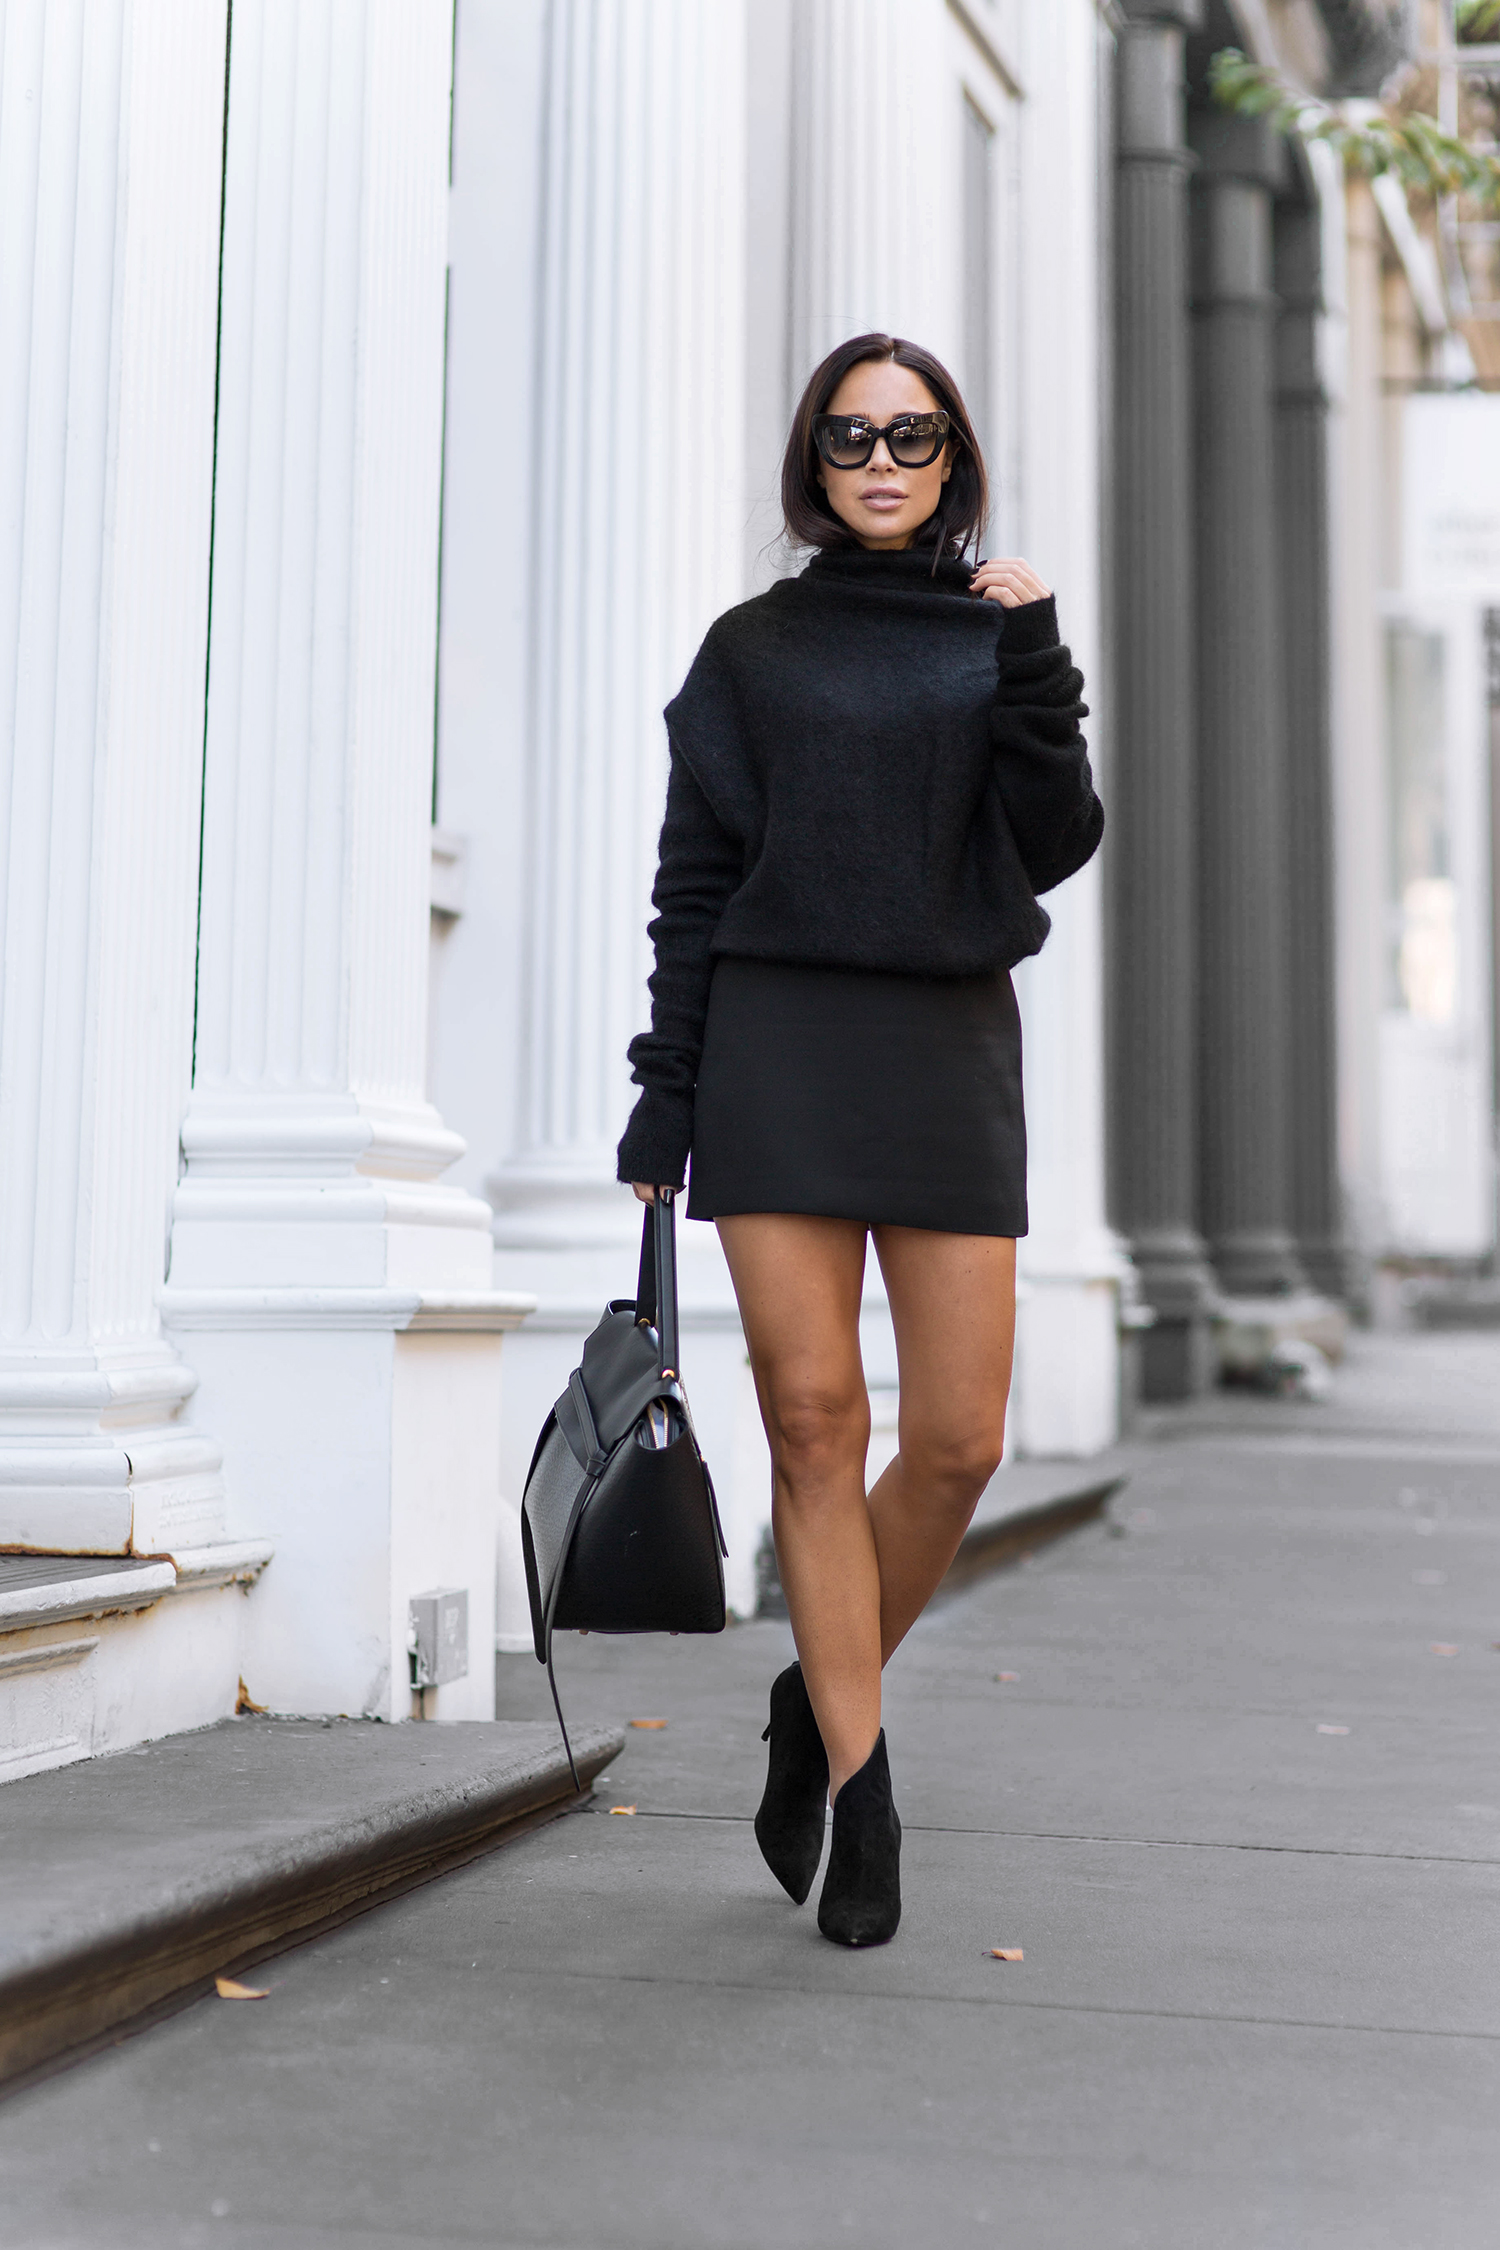 Johanna Olsson's cropped black extra long sleeved sweater looks cute worn with a black mini skirt and heels. Shoes: Giuseppe Zanotti, Sweater: Acne, Skirt: Zara, Sunglasses: The Valley, Bag: Celine.